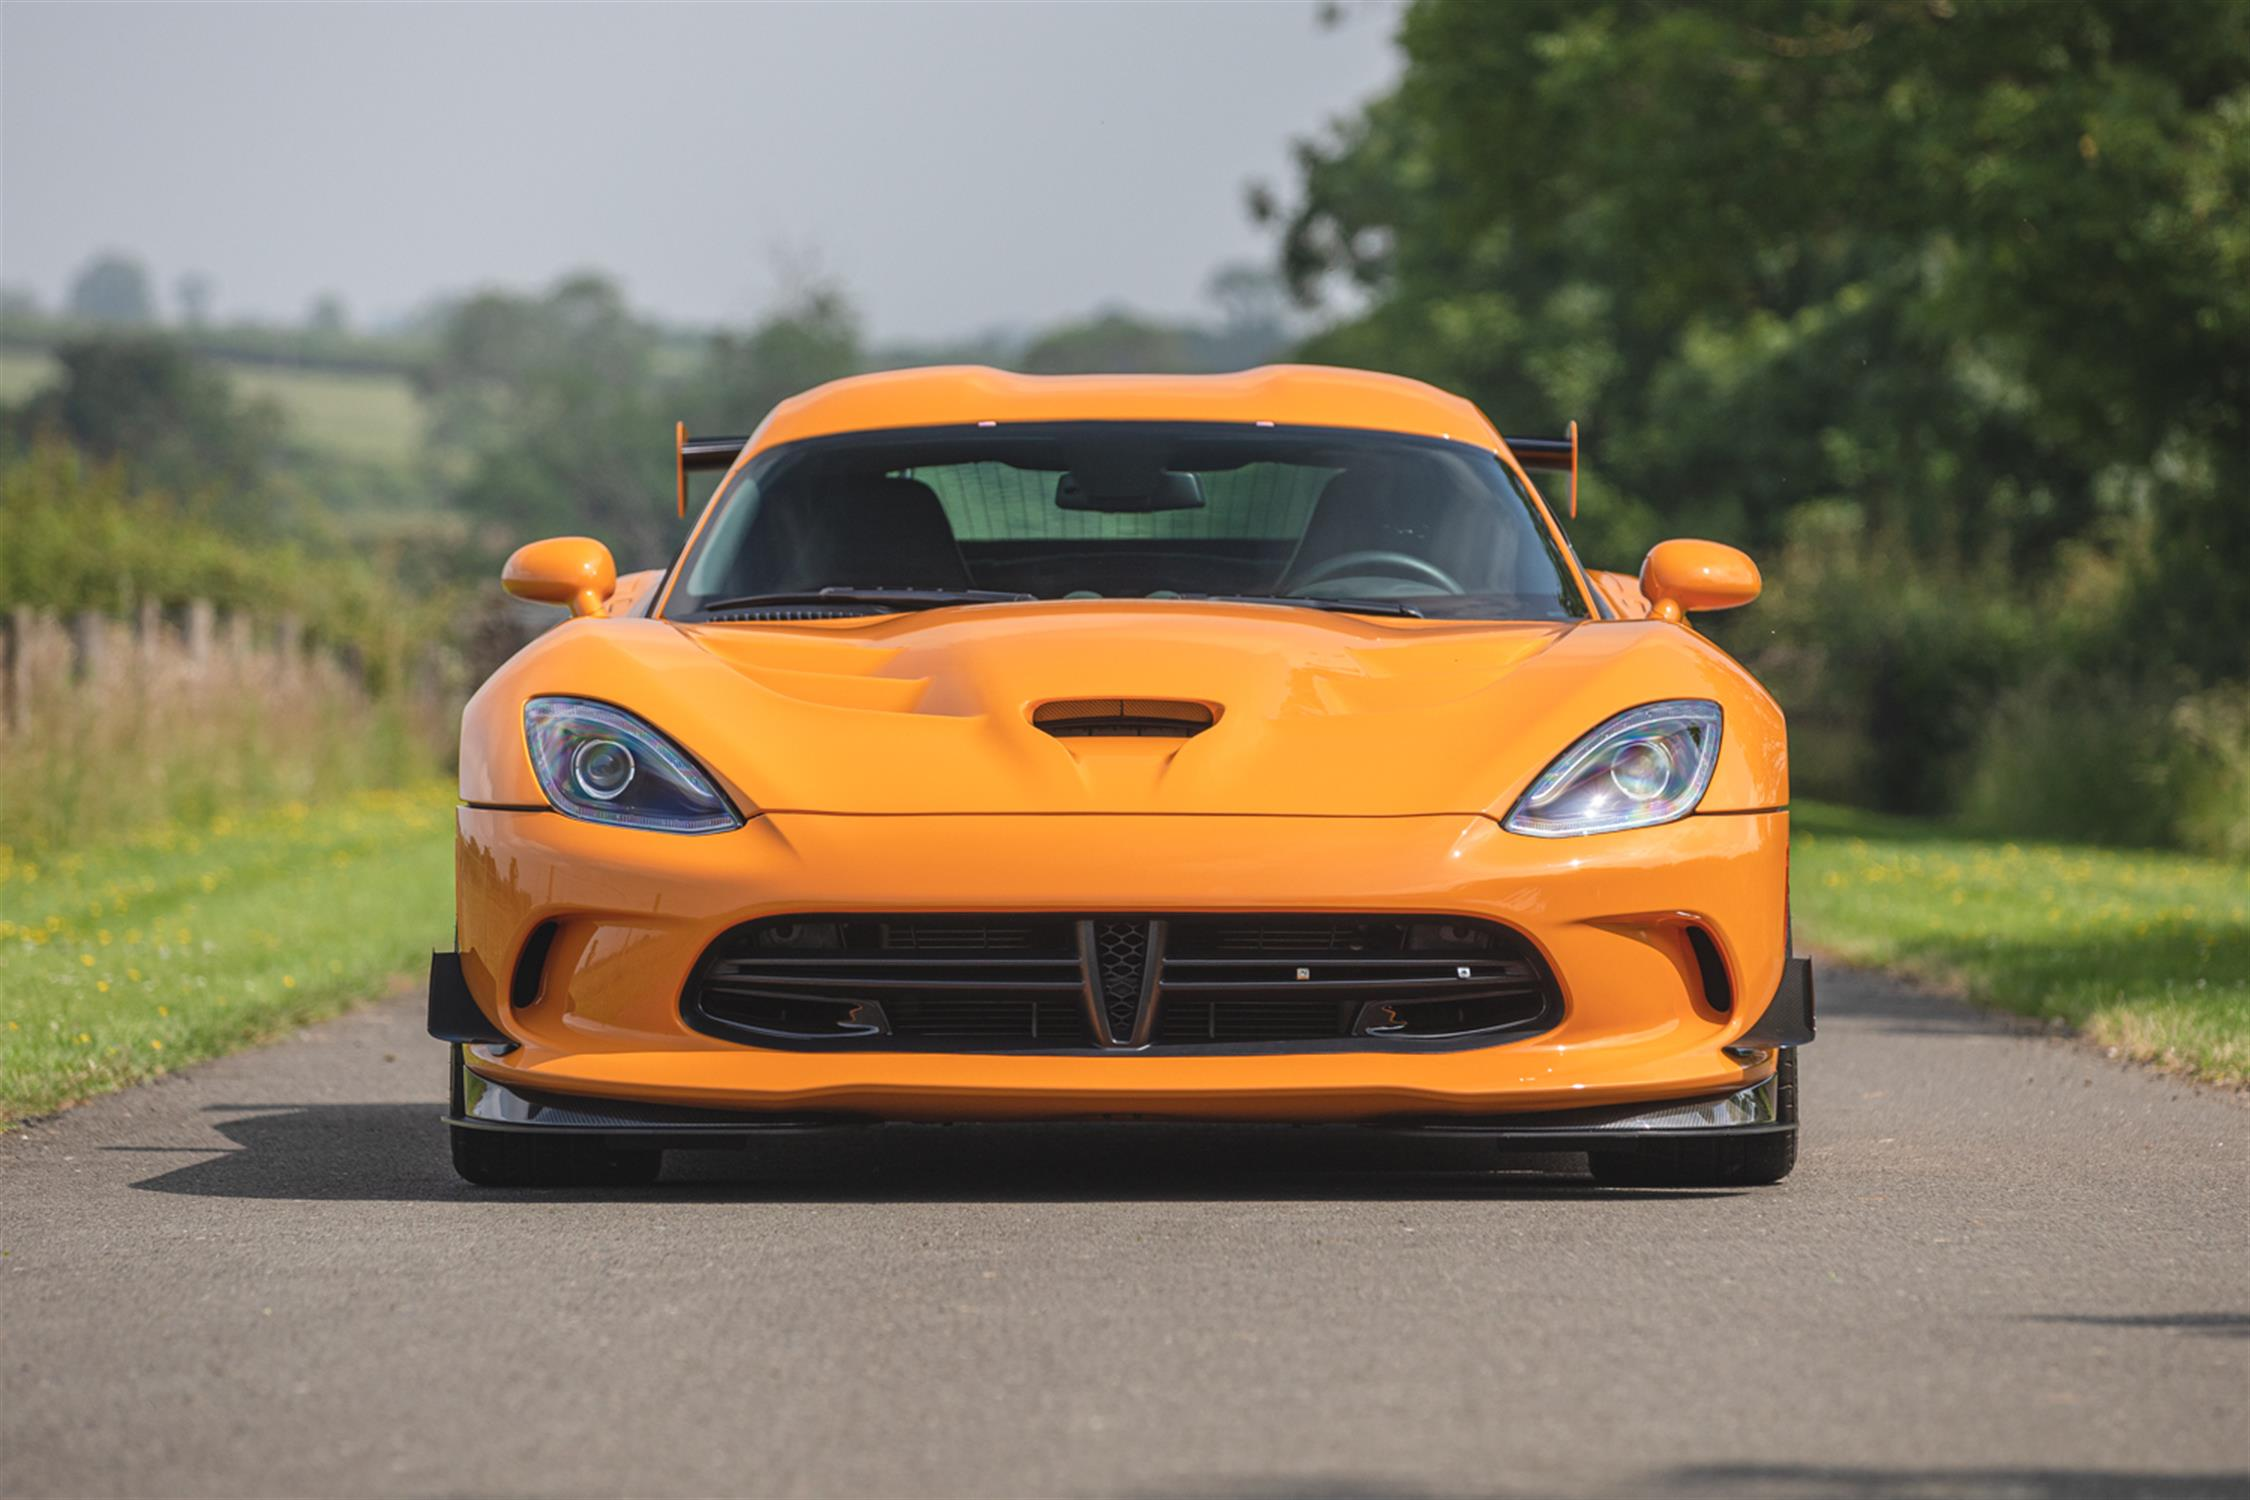 2015 Dodge Viper TA 2.0 6-Speed Coupe - Image 8 of 10